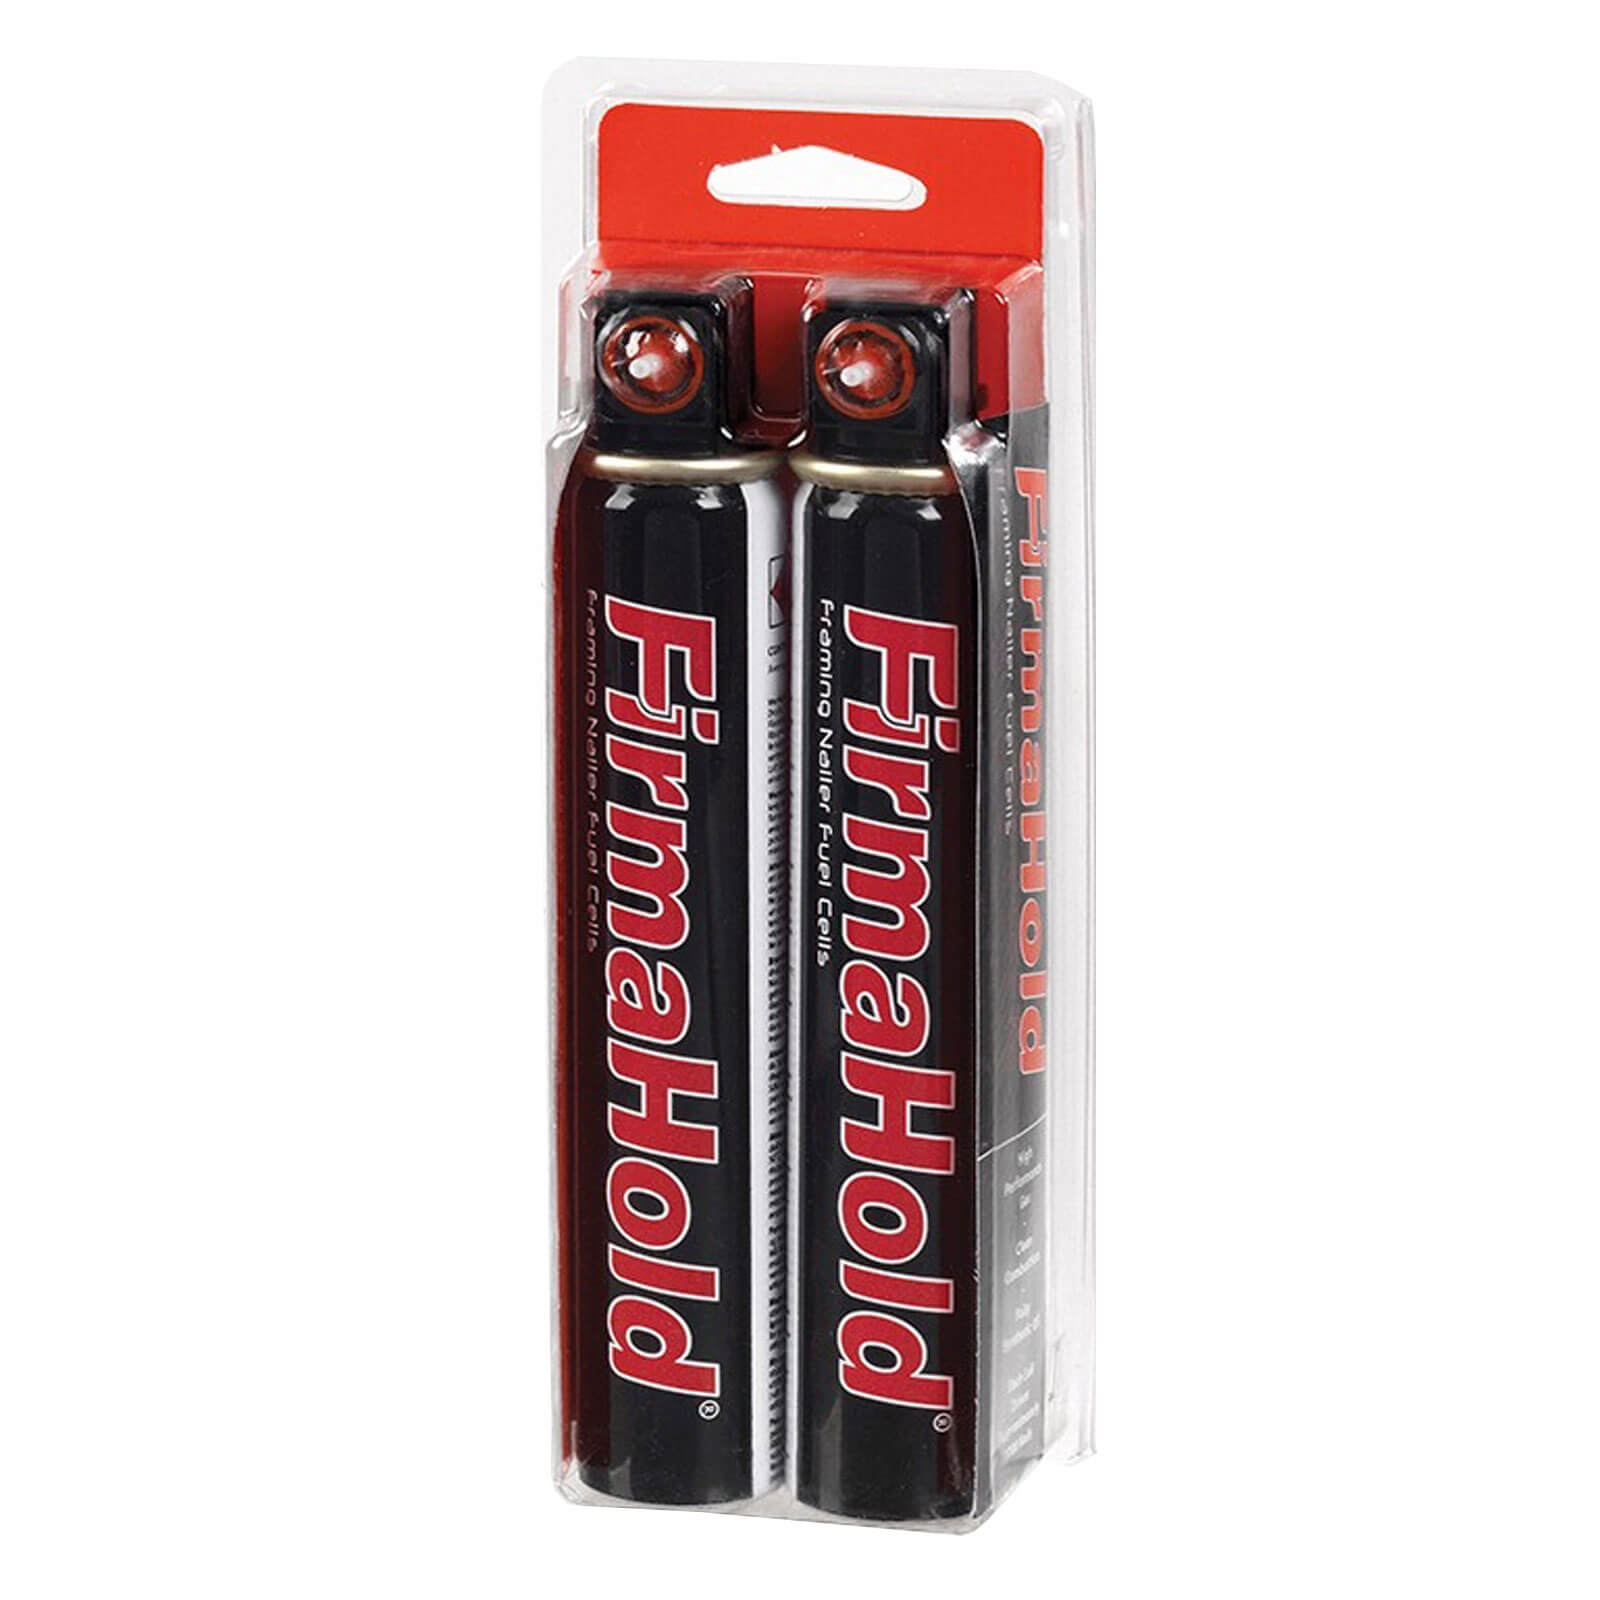 Image of Firmahold Framing Gas Nail Fuel Cells Pack of 2